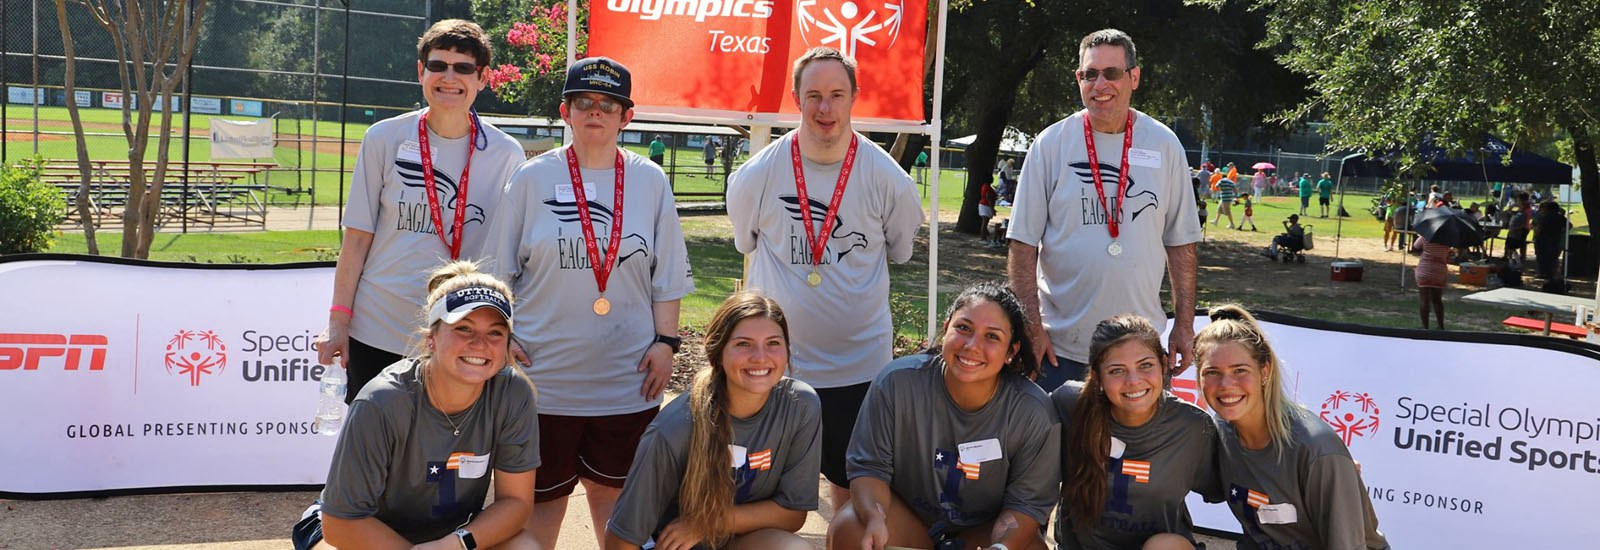 Photo: BVT Residents at the Special Olympics in Texas